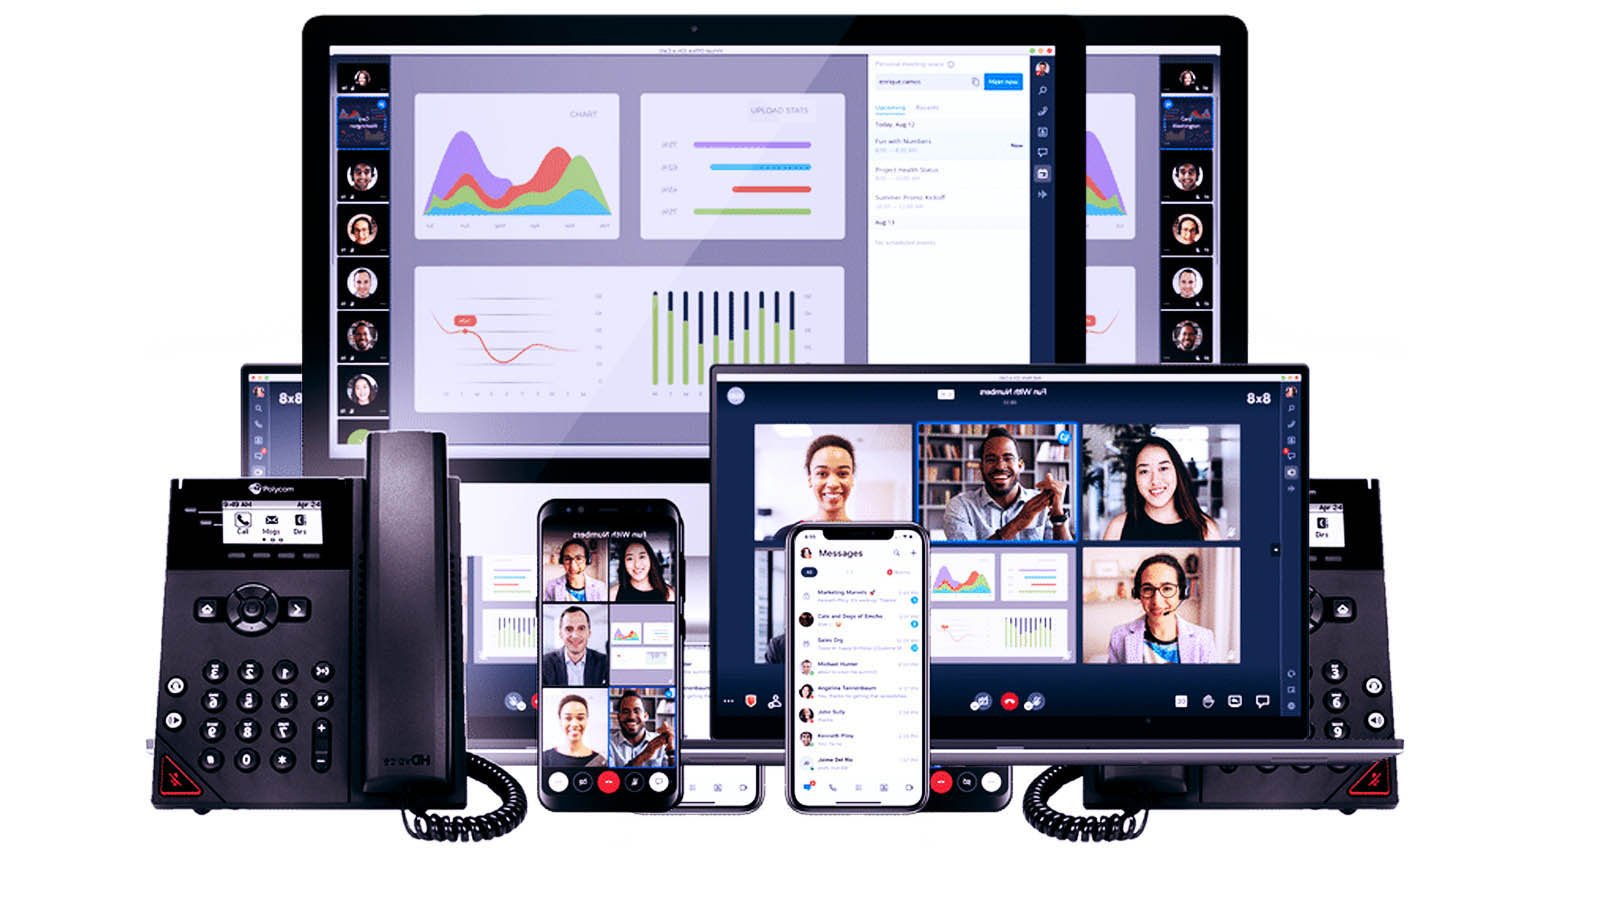 8X8 Communication by MNB IT Services